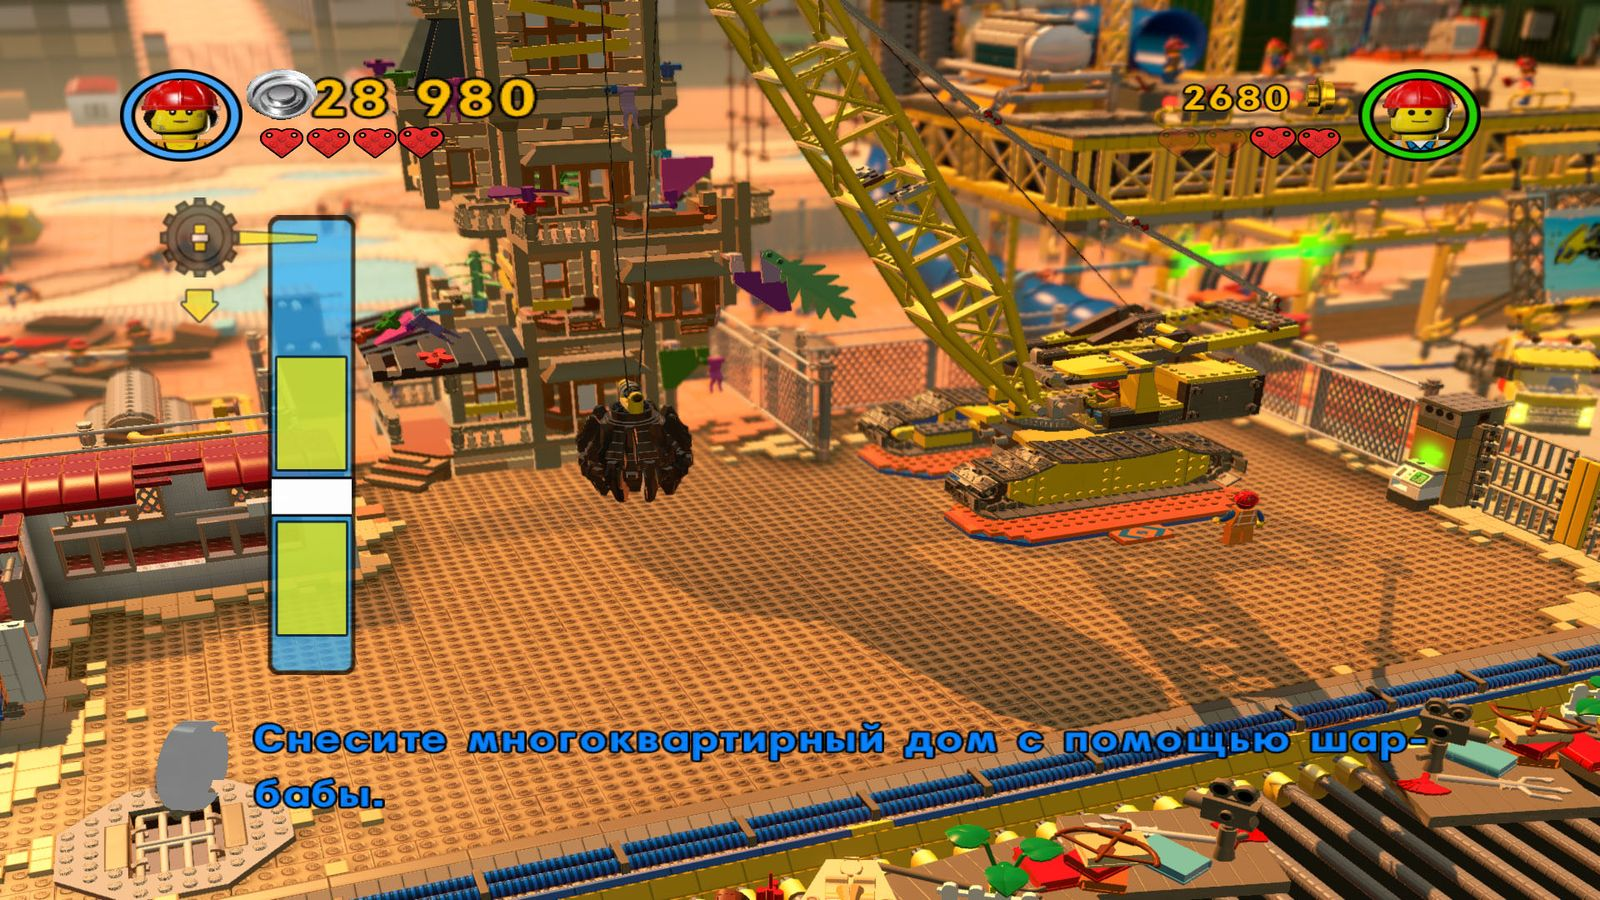 The lego movie videogame review | pc gamer.